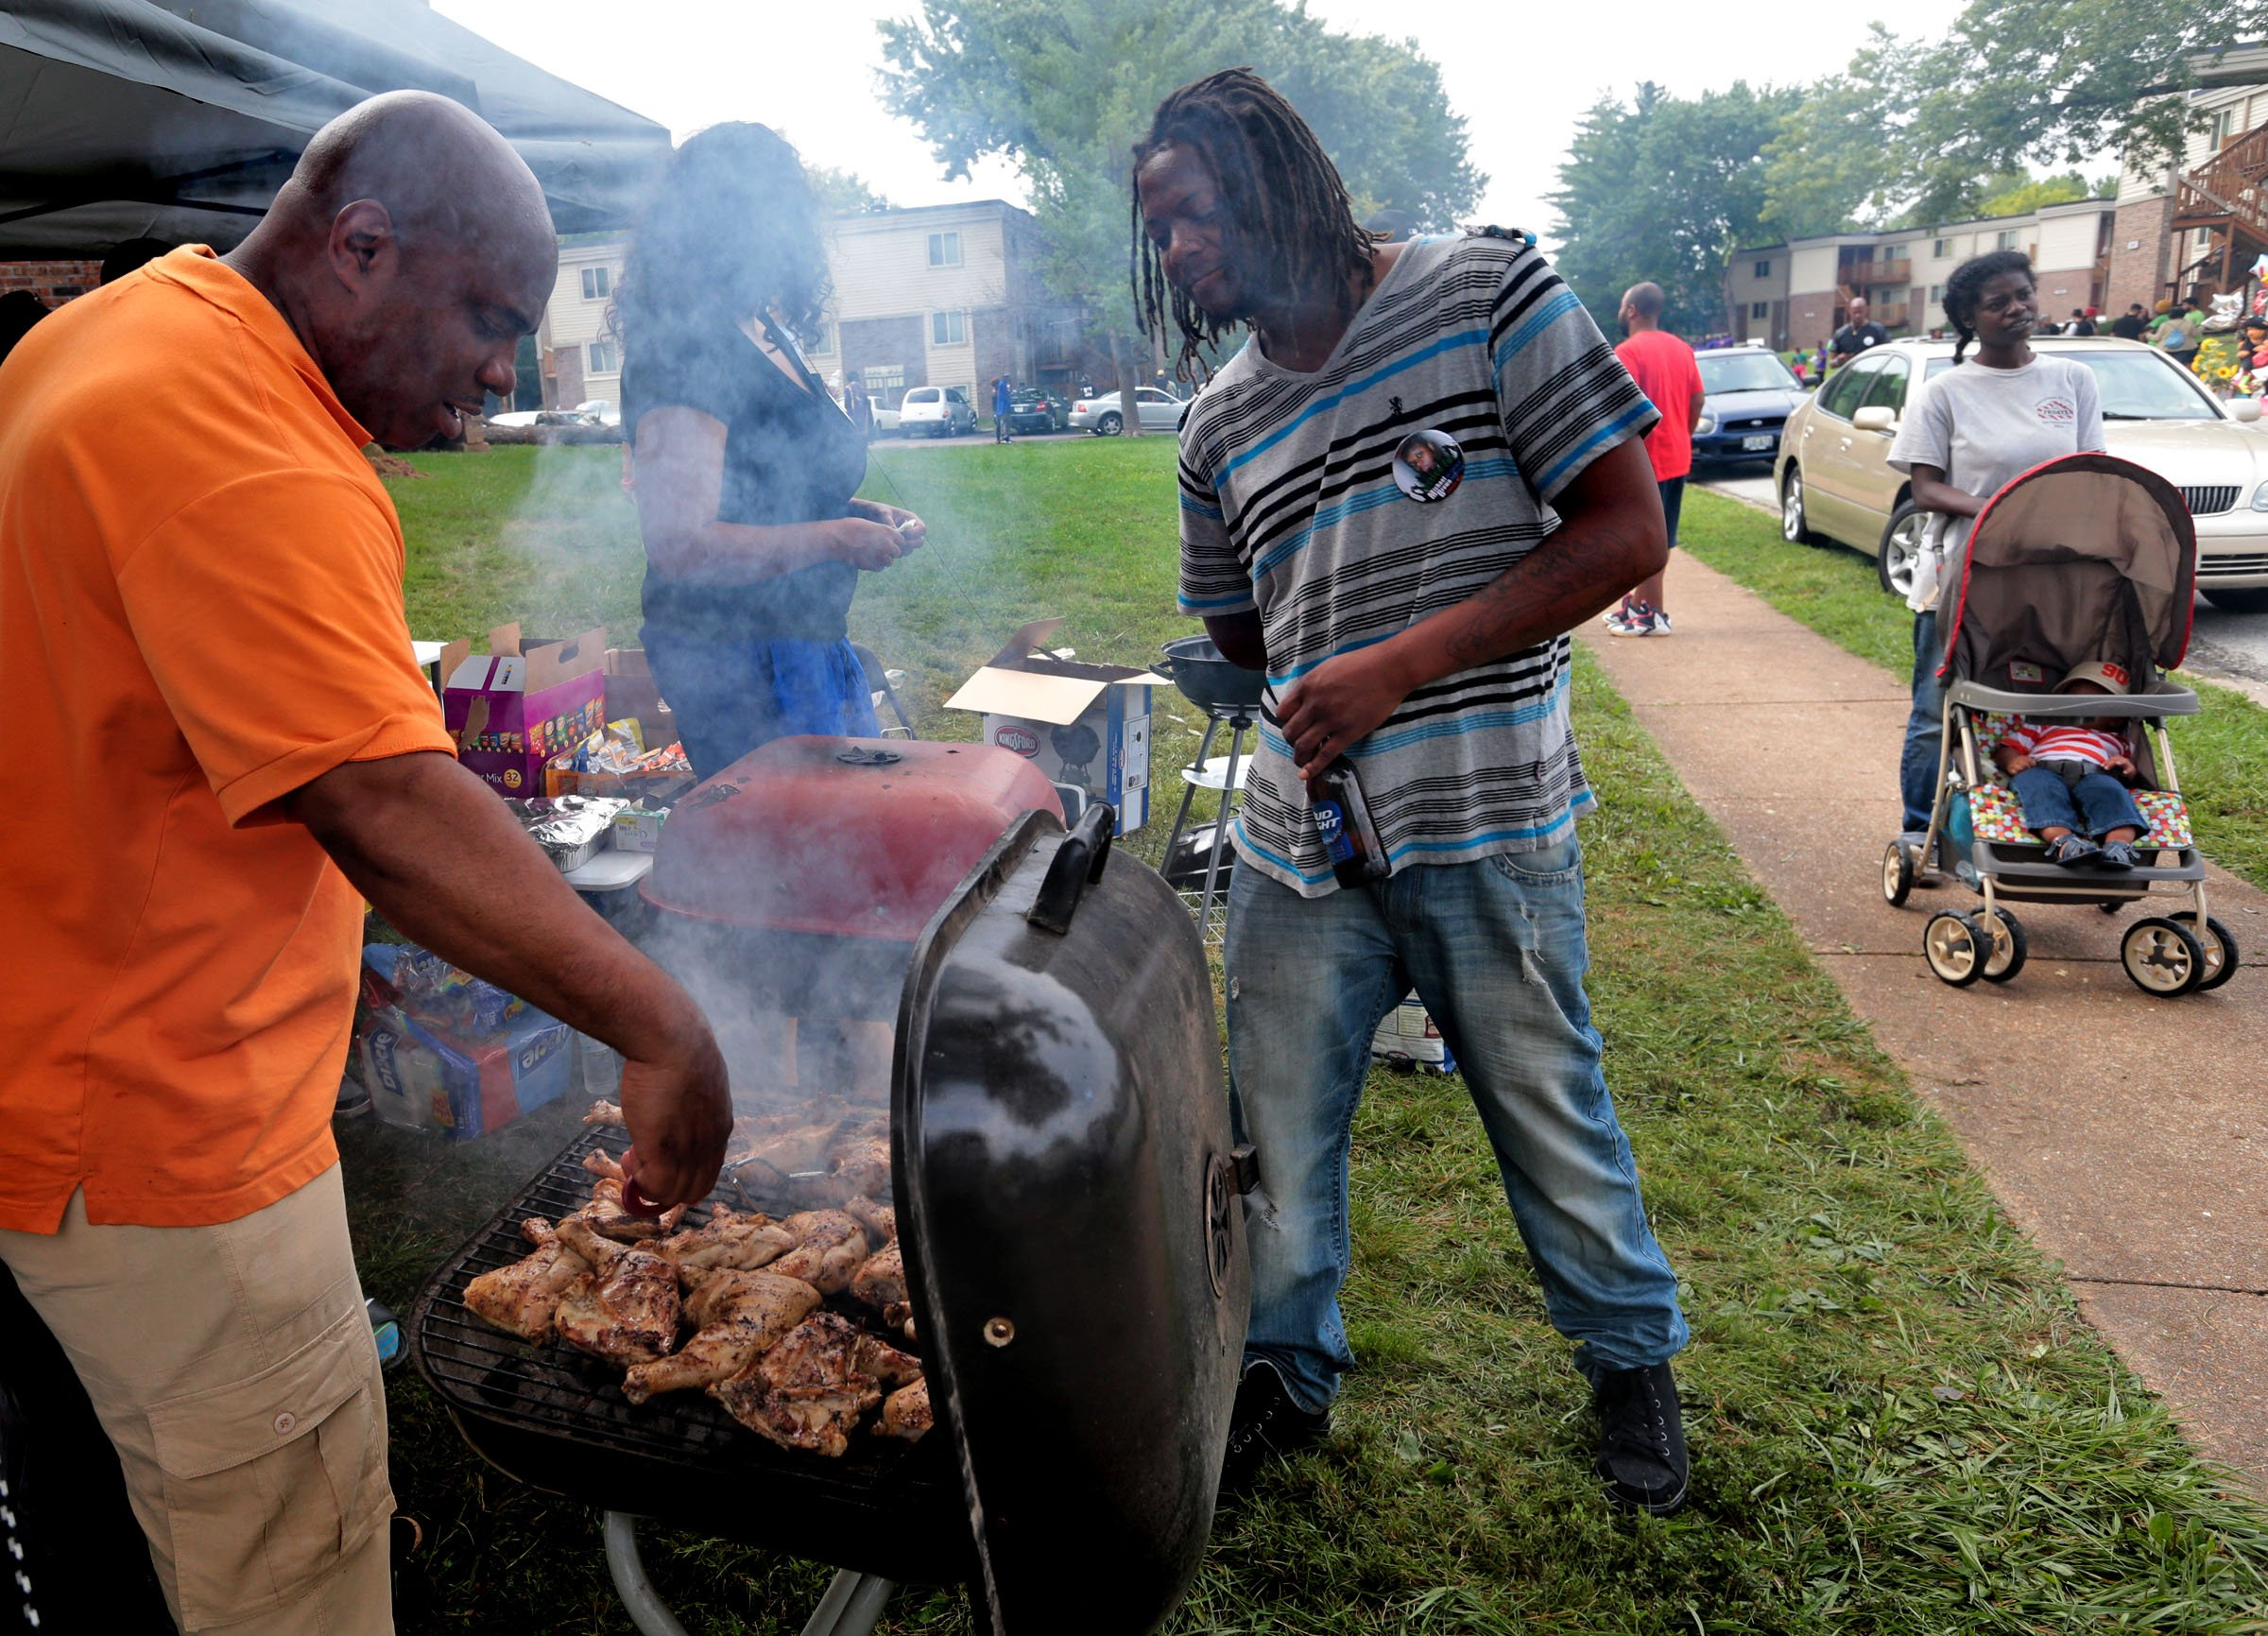 """""""I live here but I am contributing too. I brought stuff over. I wanted to give back, to do anything to promote the unity I am feeling. Anything to promote anything positive,"""" said Devon Stone, (left), who watches Kevin Ephron of Florissant aka """"The Grillmaster"""" cook up BBQ for residents on Saturday, Aug. 15, 2014, inside Canfield Green apartment complex. Ephron's sister Yolando Miller organized a tent inside the compex offering free drinks, food, school supplies, diapers for the families inside the complex.  Photo by Laurie Skrivan, lskrivan@post-dispatch.com"""